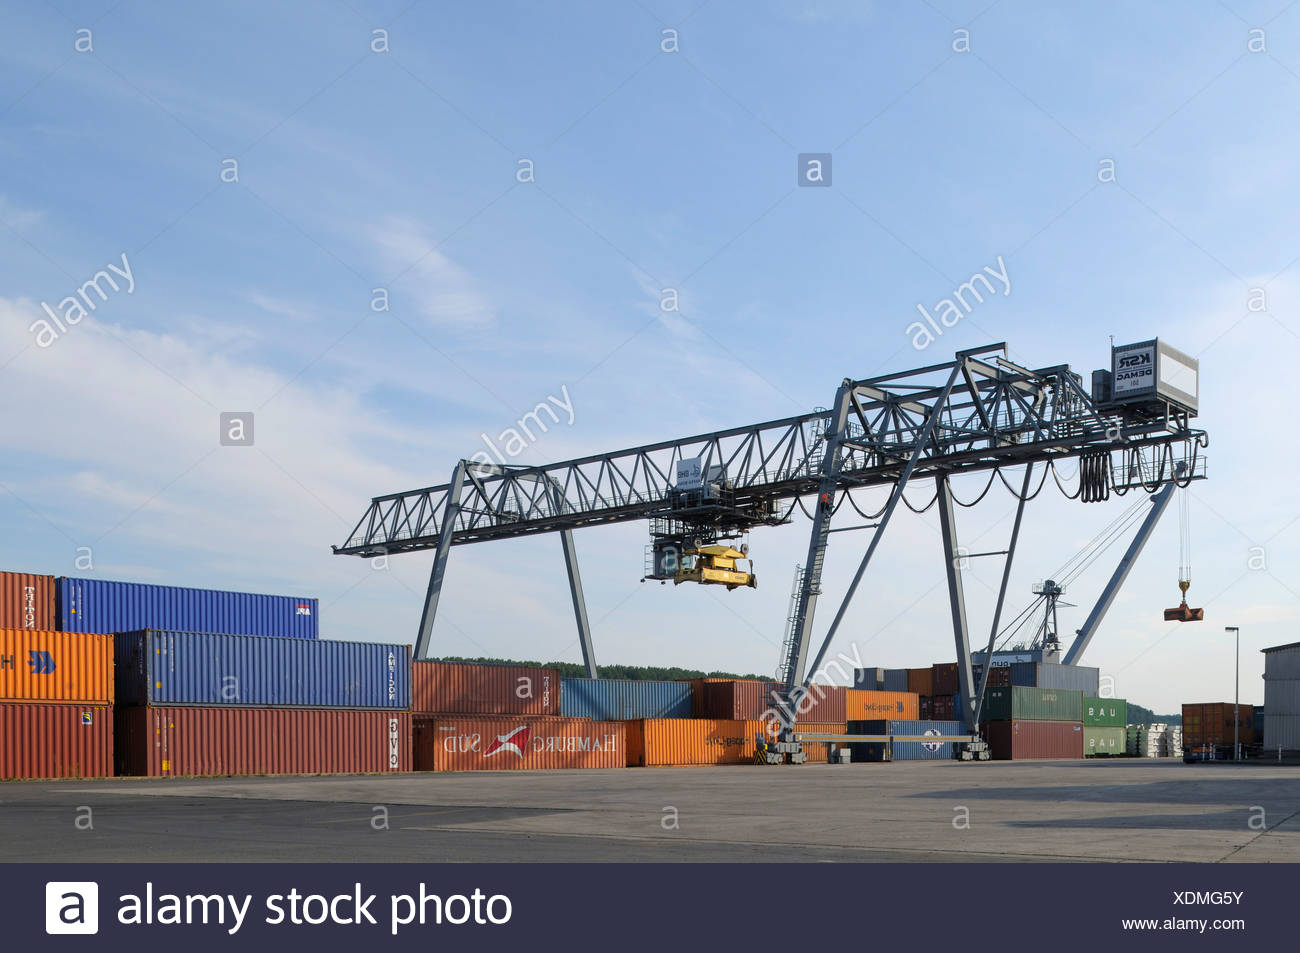 Container gantry crane for intermodal freight transport, port in Bonn, North Rhine-Westphalia - Stock Image